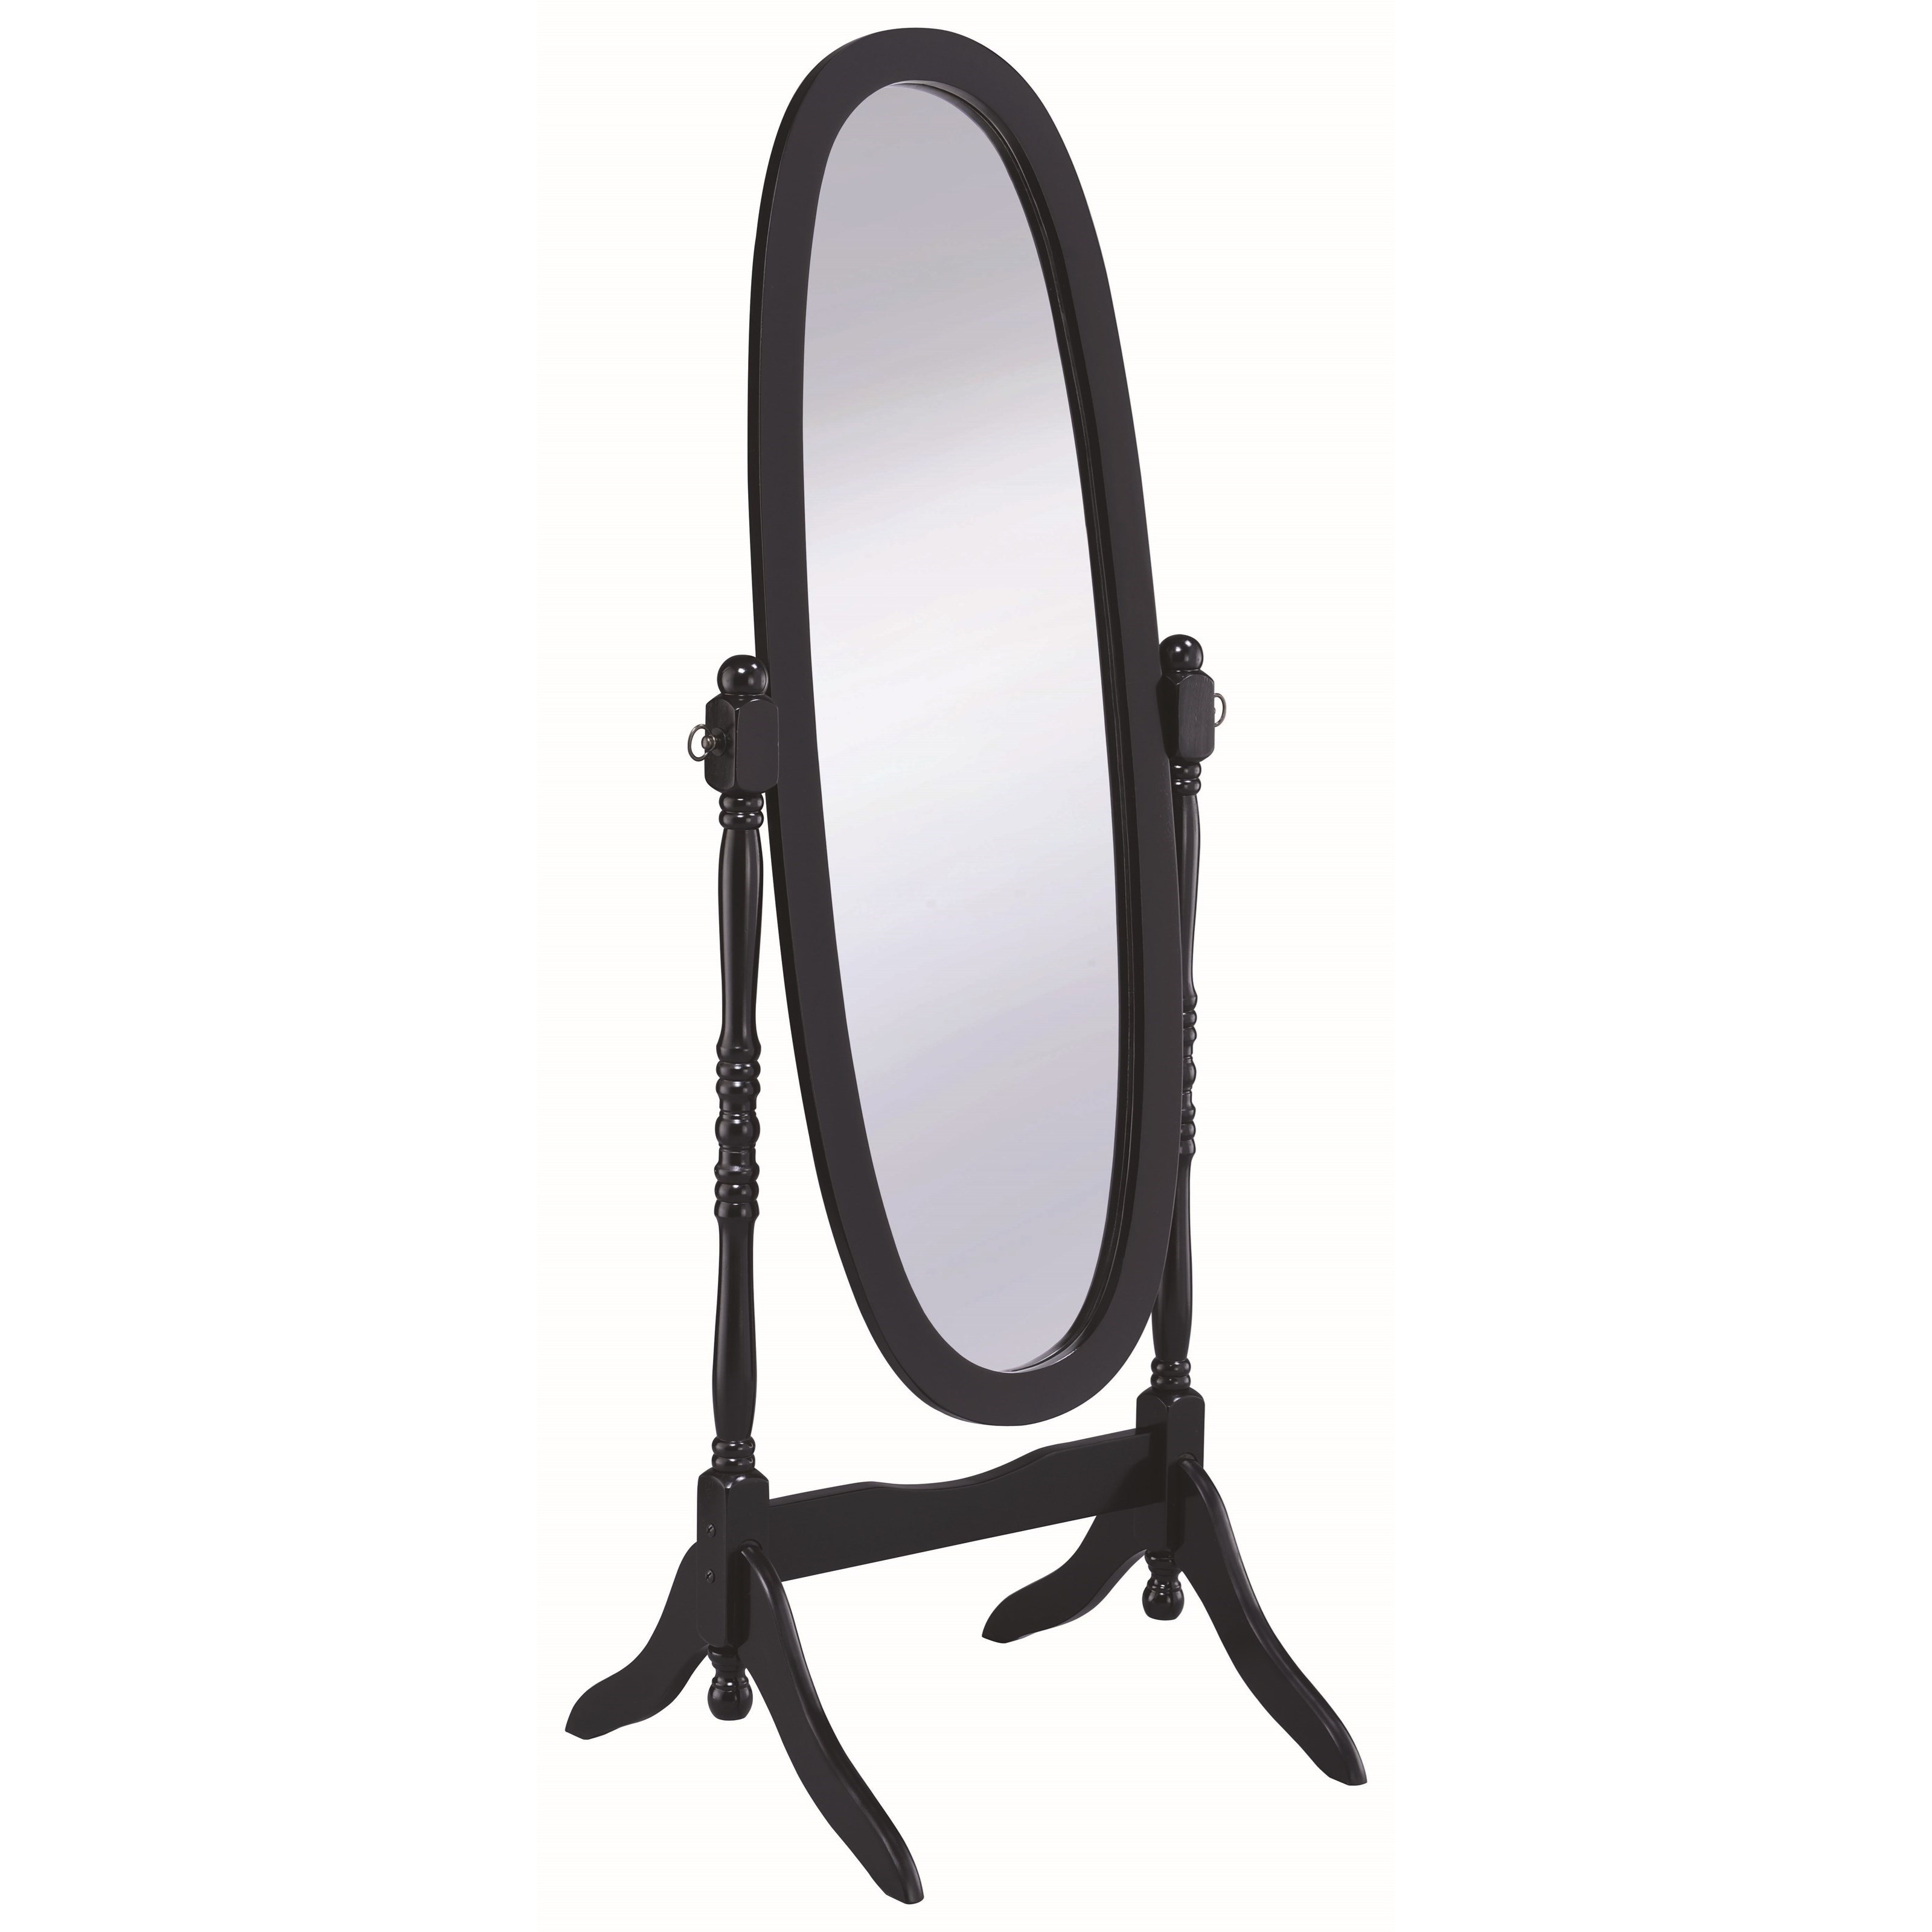 Coaster Accent Mirrors Cheval Mirror - Item Number: 950803